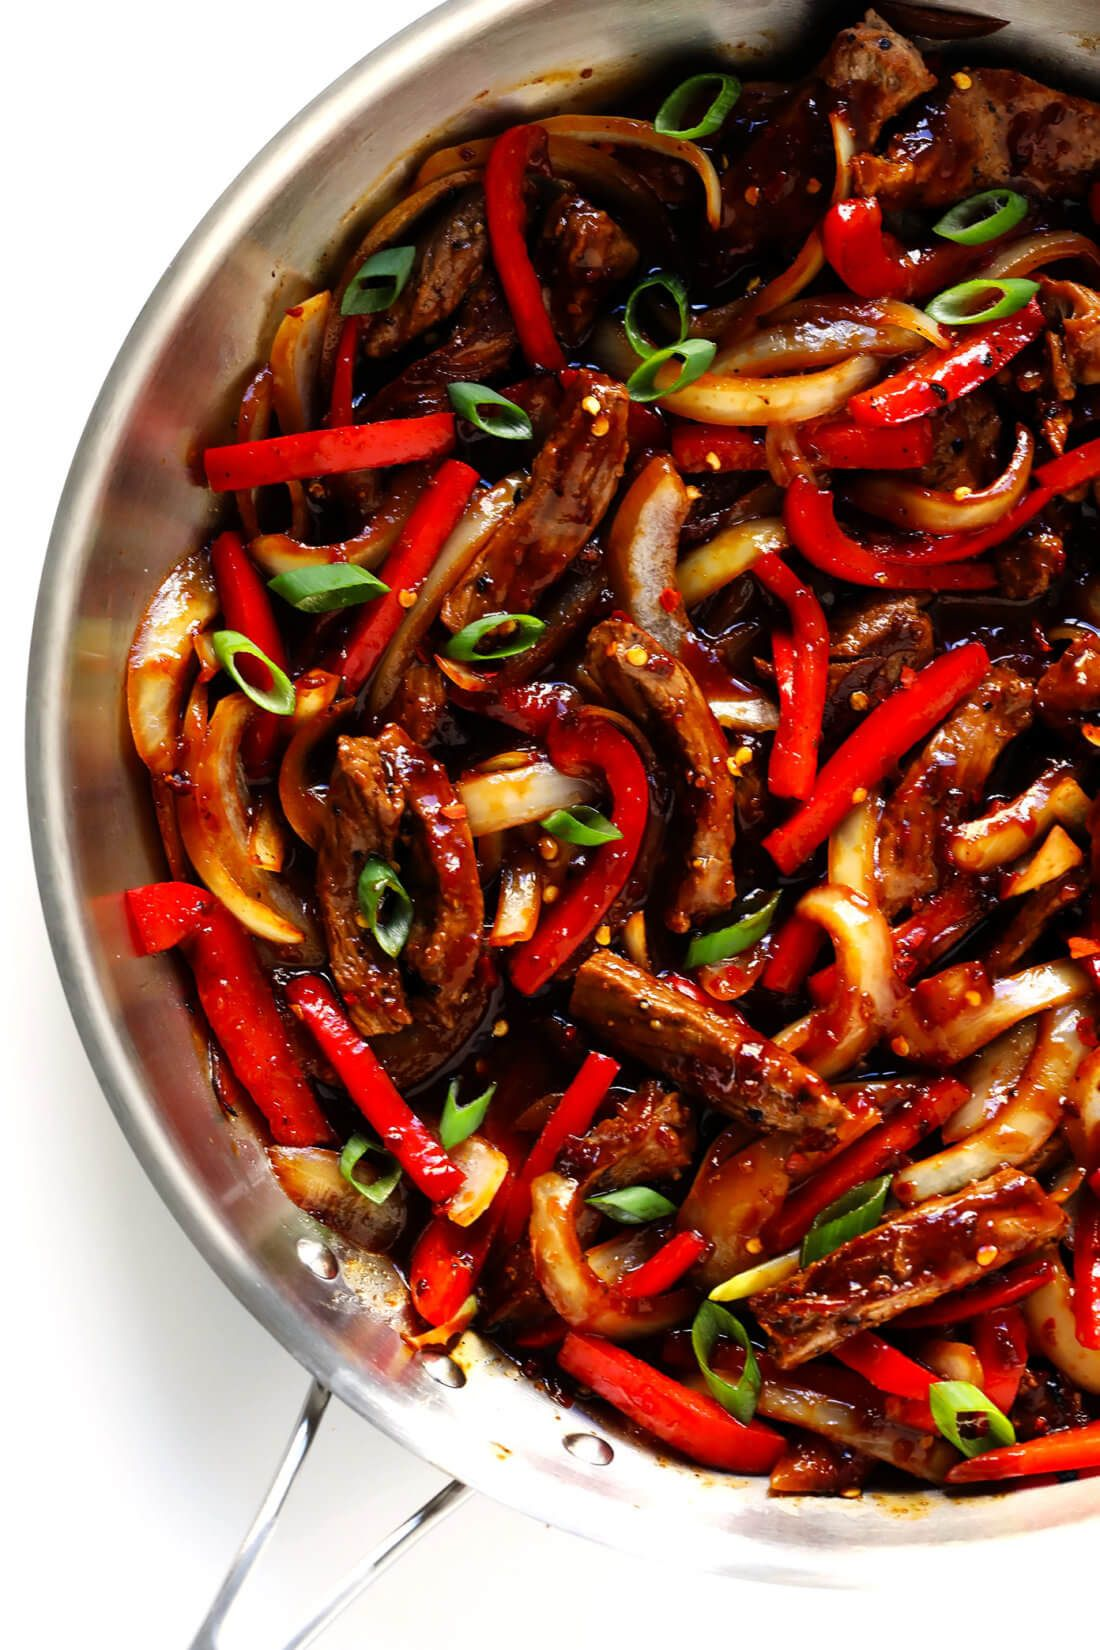 Sizzlin' Spicy Szechuan Stir-Fry | Gimme Some Oven